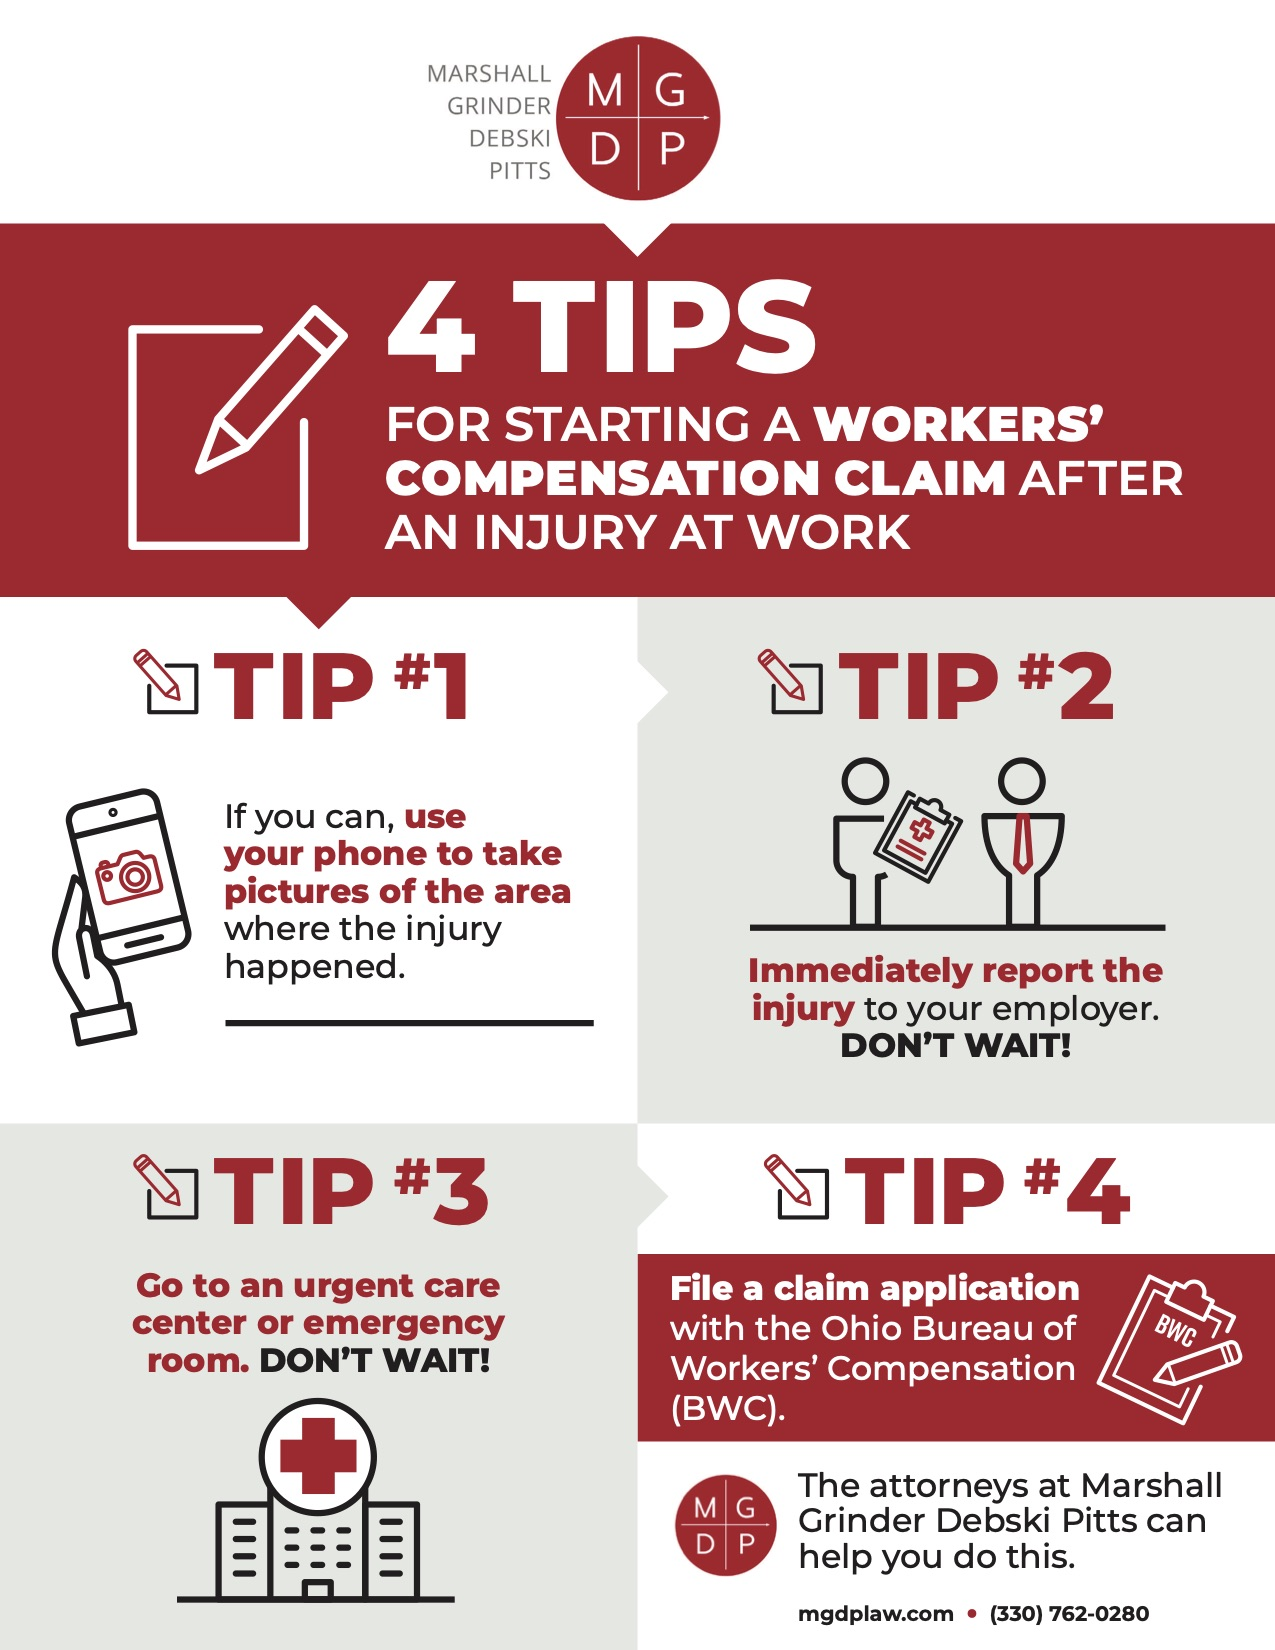 INFOGRAPHIC   4 TIPS FOR STARTING A WORKERS' COMPENSATION CLAIM AFTER AN INJURY AT WORK